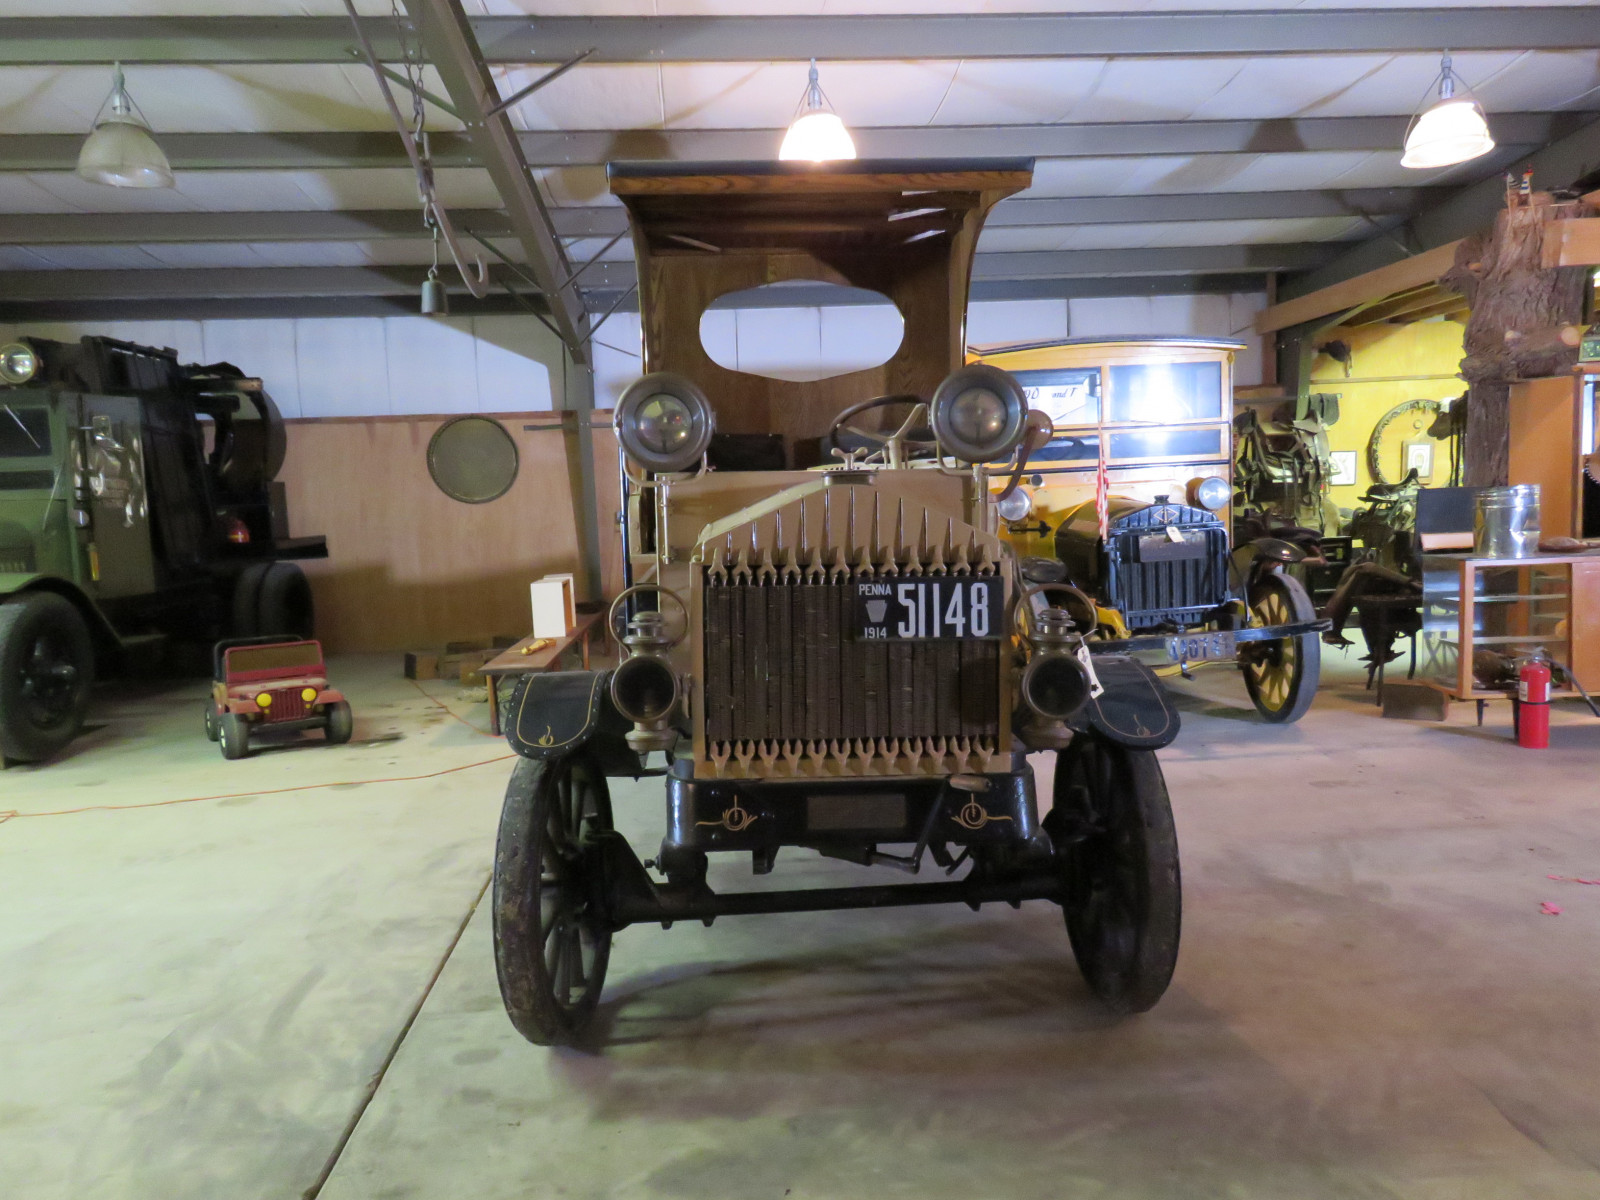 1914 REO Speedwagon Model J 2 Ton Truck - Image 2